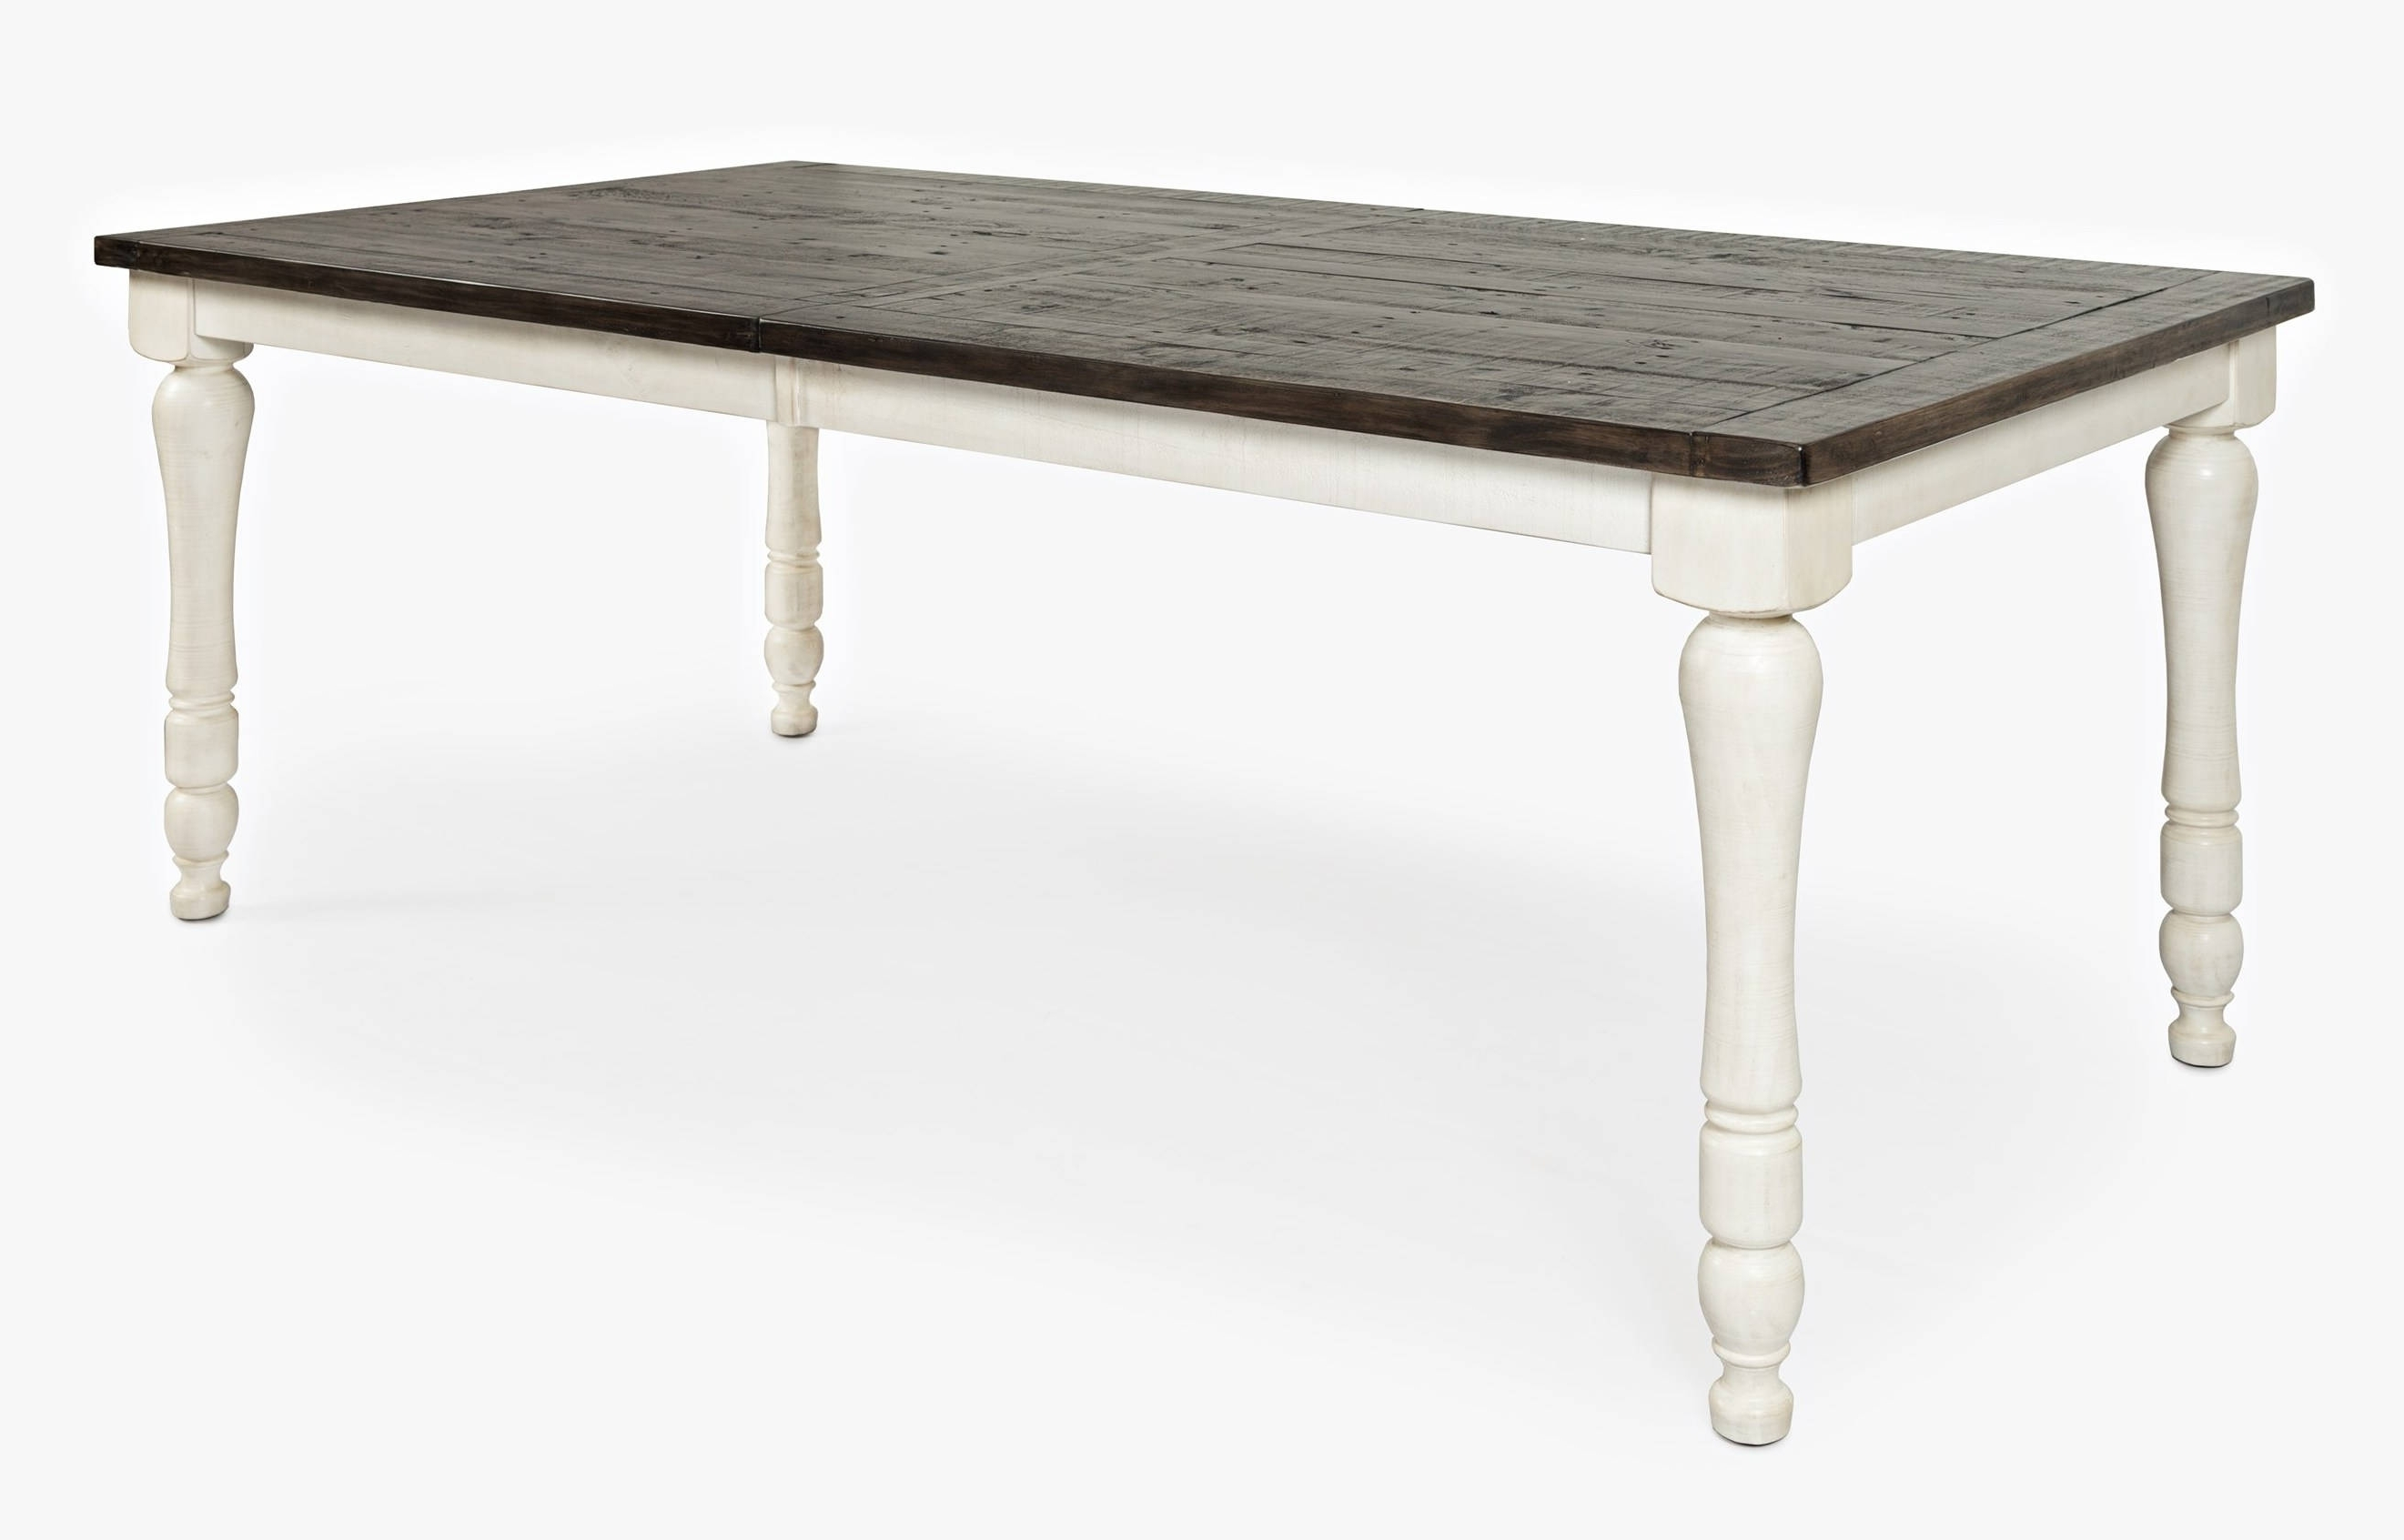 Craftsman Rectangle Extension Dining Tables Within Best And Newest Jofran Furniture Madison County Vintage White Rectangle Extension (View 23 of 25)